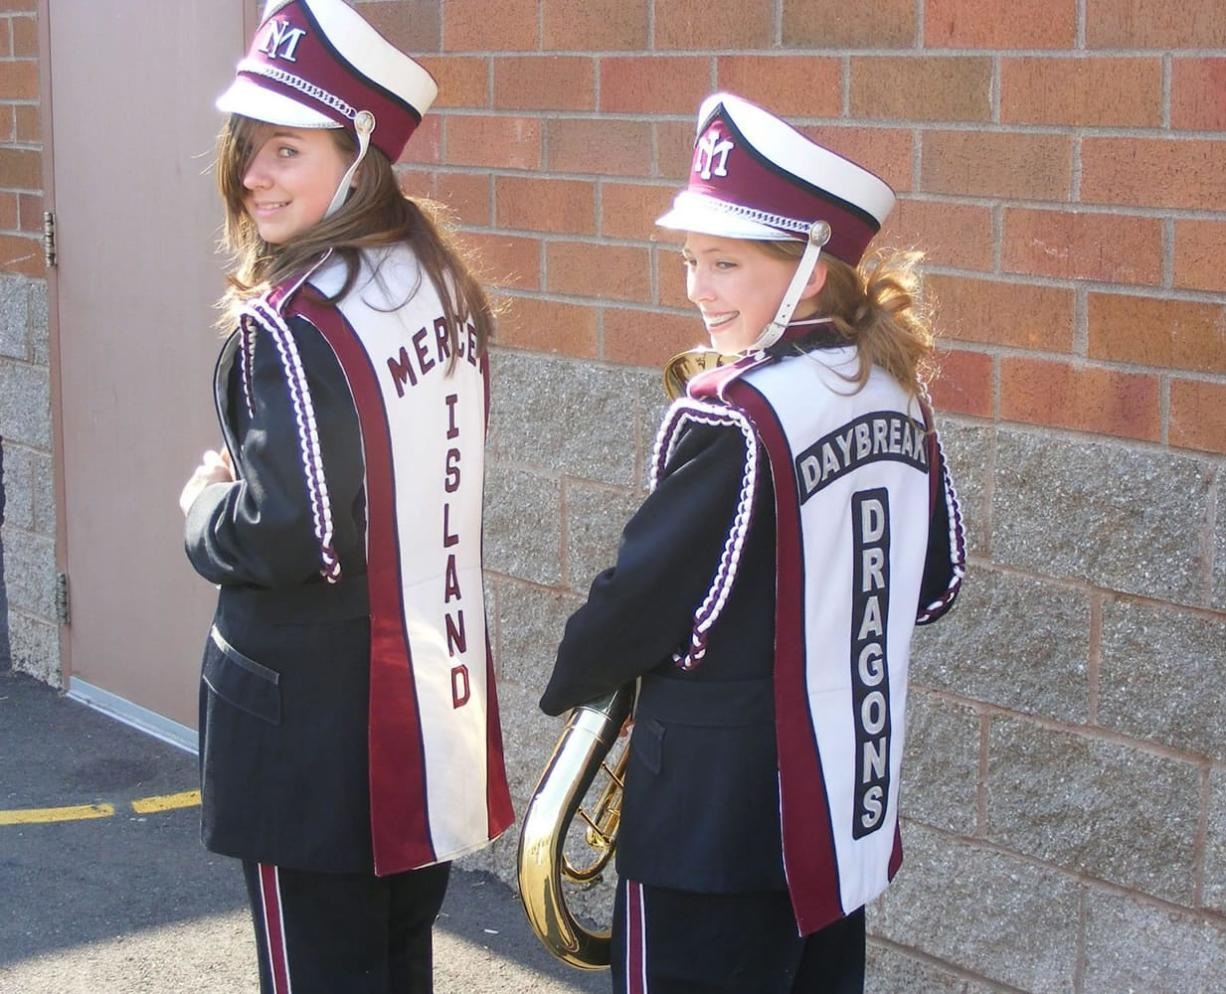 Daybreak Middle School seventh-graders Jessie Wiseman, left, and Briana Robbins, display the uniform overlays, one with the Mercer Island identifier and one with new Daybreak Dragons patches.